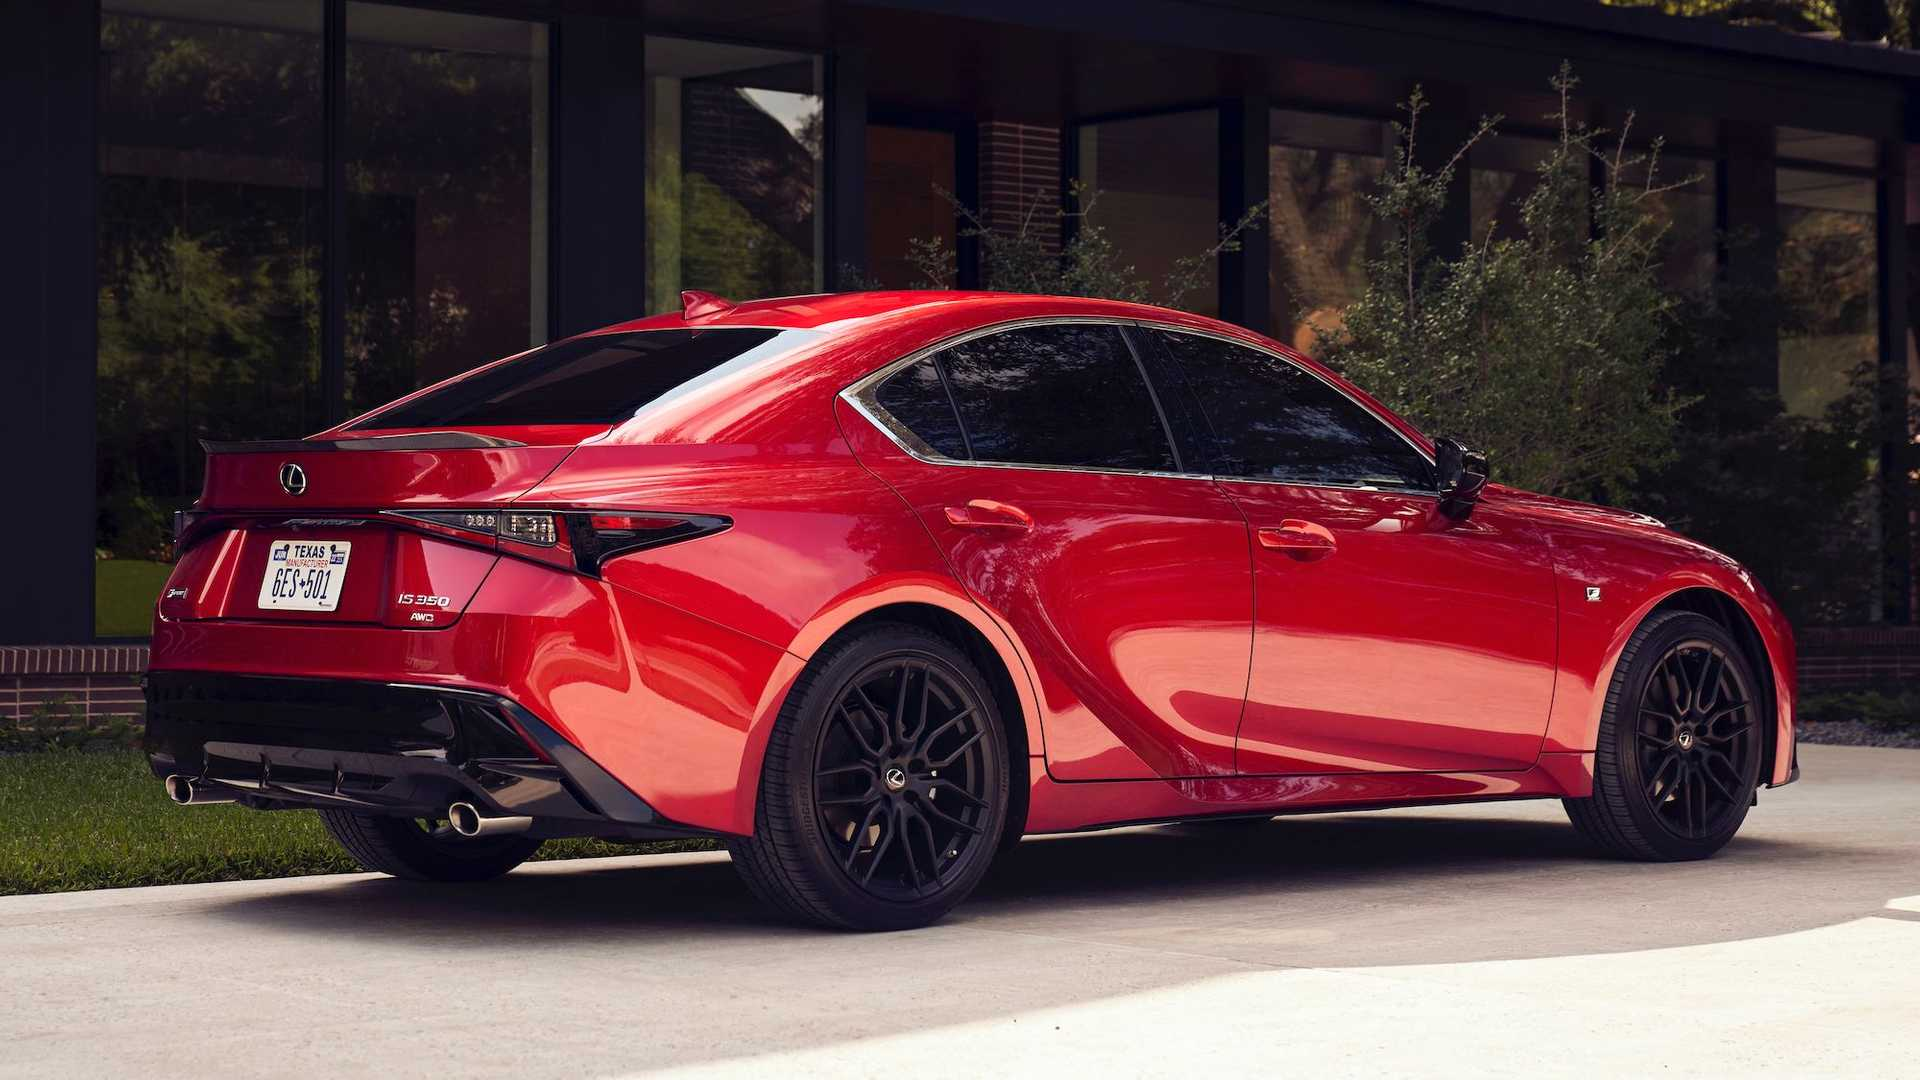 new 2021 lexus is priced from $39,900 - autoevolution